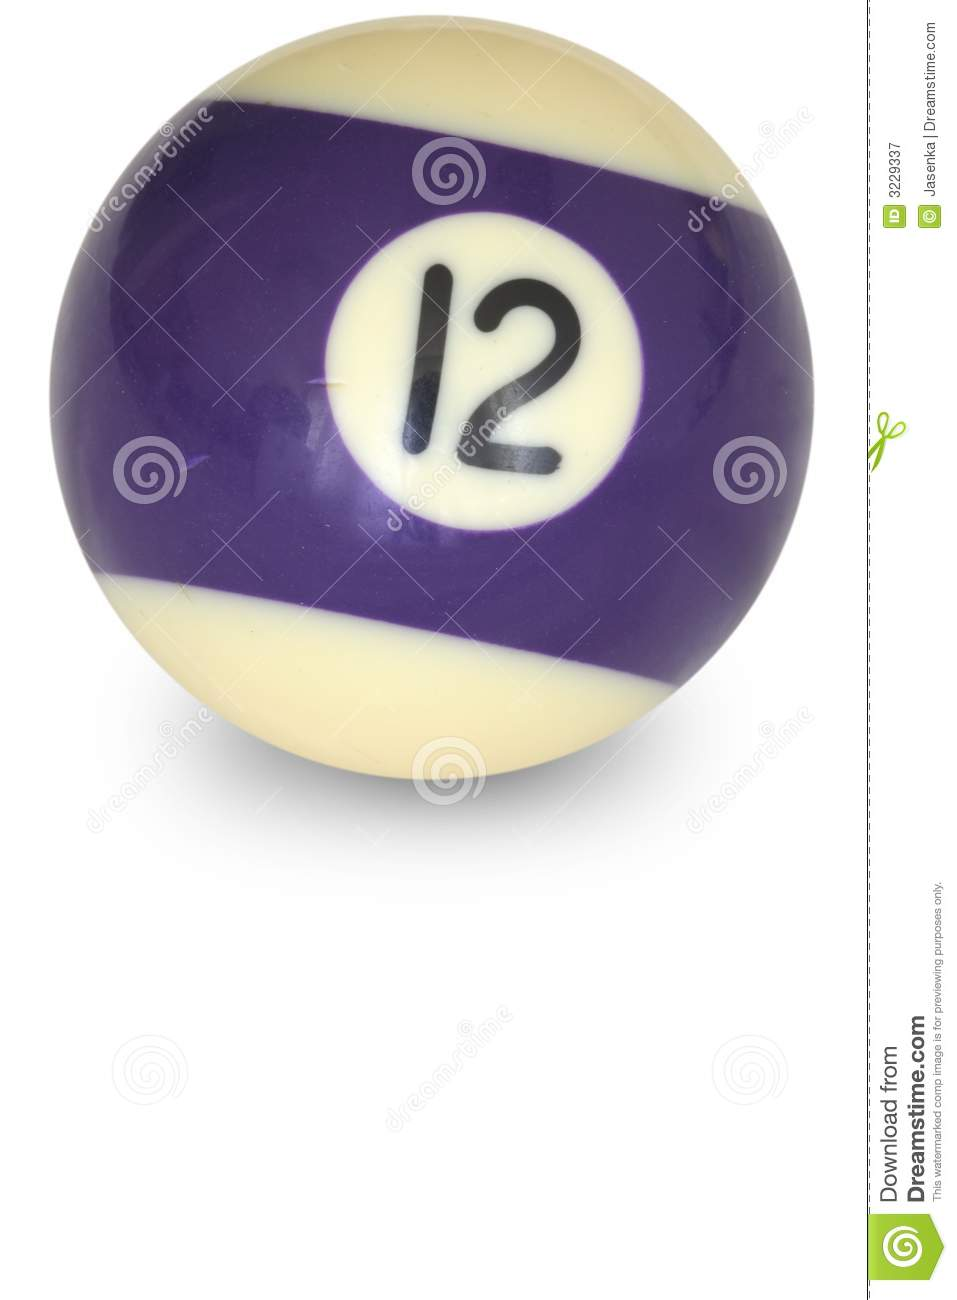 Pool Ball Number 12 Stock Image. Image Of Ball, Hobby